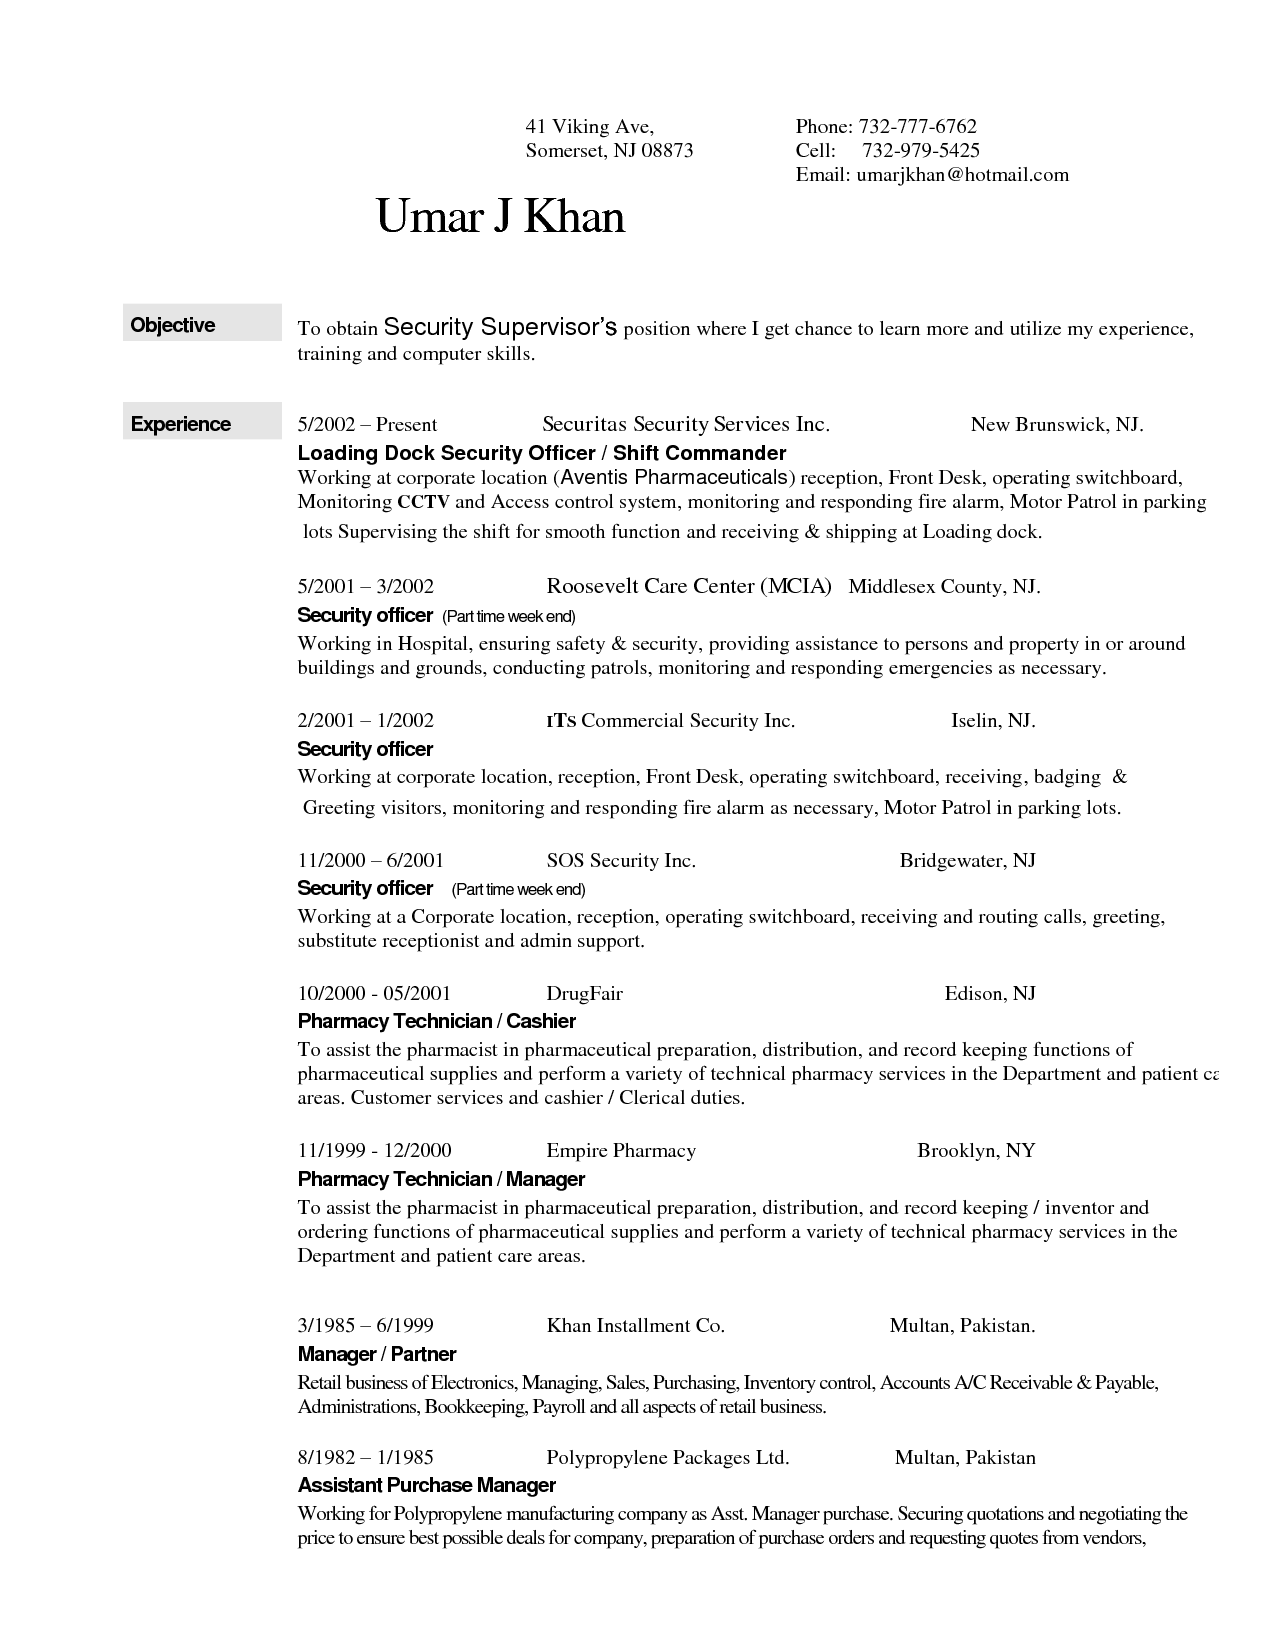 Entry Level Job Resume Objective Entry Level Security Guard Resume Examples Http Www